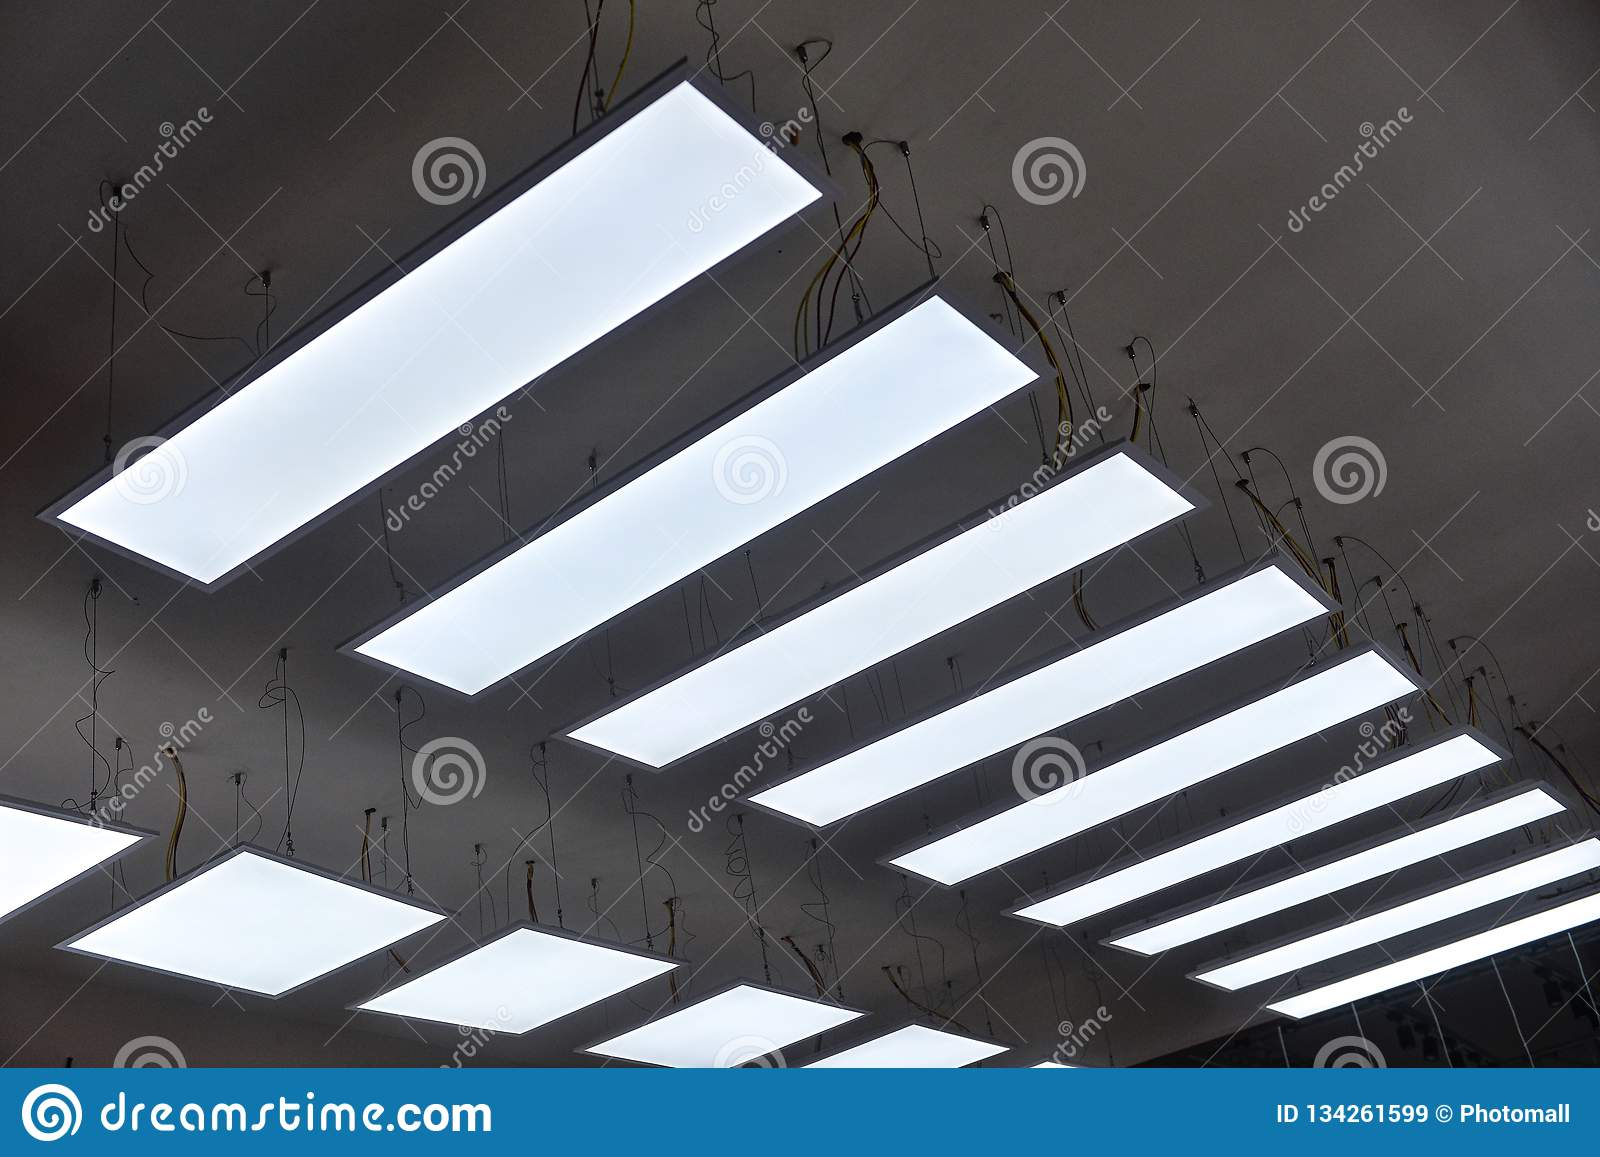 Led Hanging Lighting In Commercial Building Stock Image Image Of Appliance Exhibit 134261599